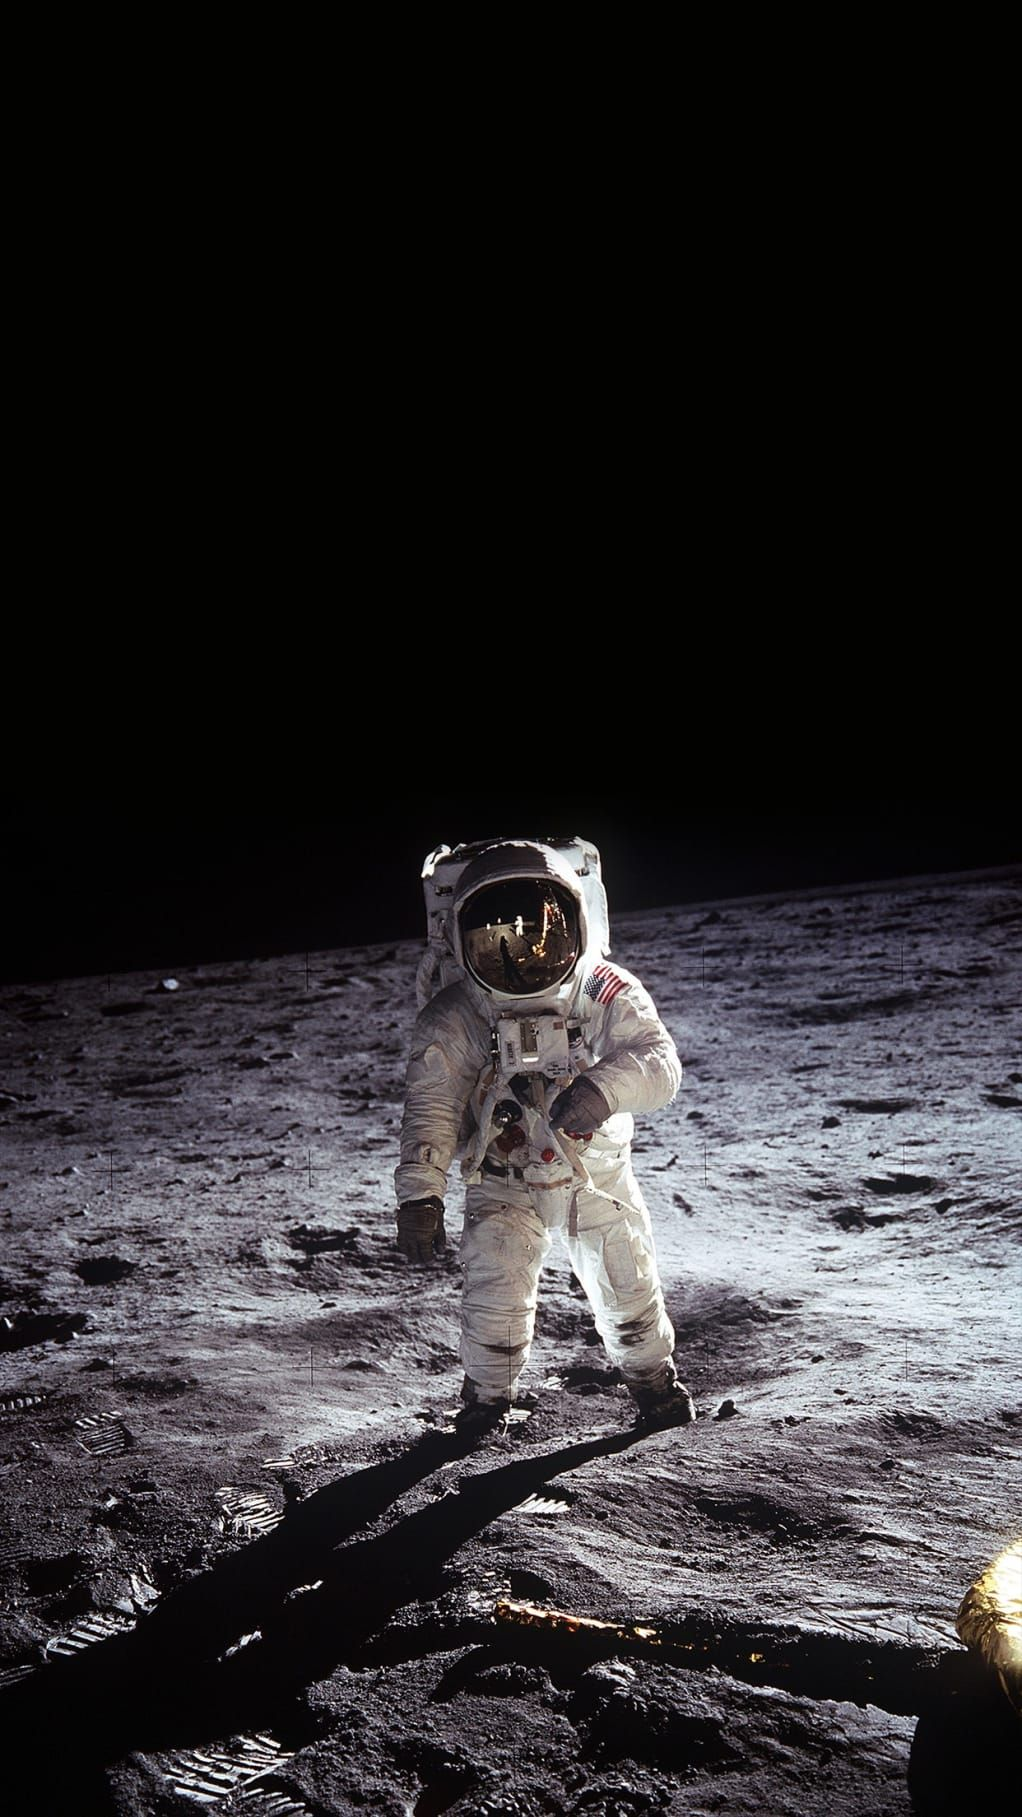 5 Wallpapers That Will Look Perfect On Your Iphone 5 Nasa Wallpaper Astronaut Wallpaper Wallpaper Space